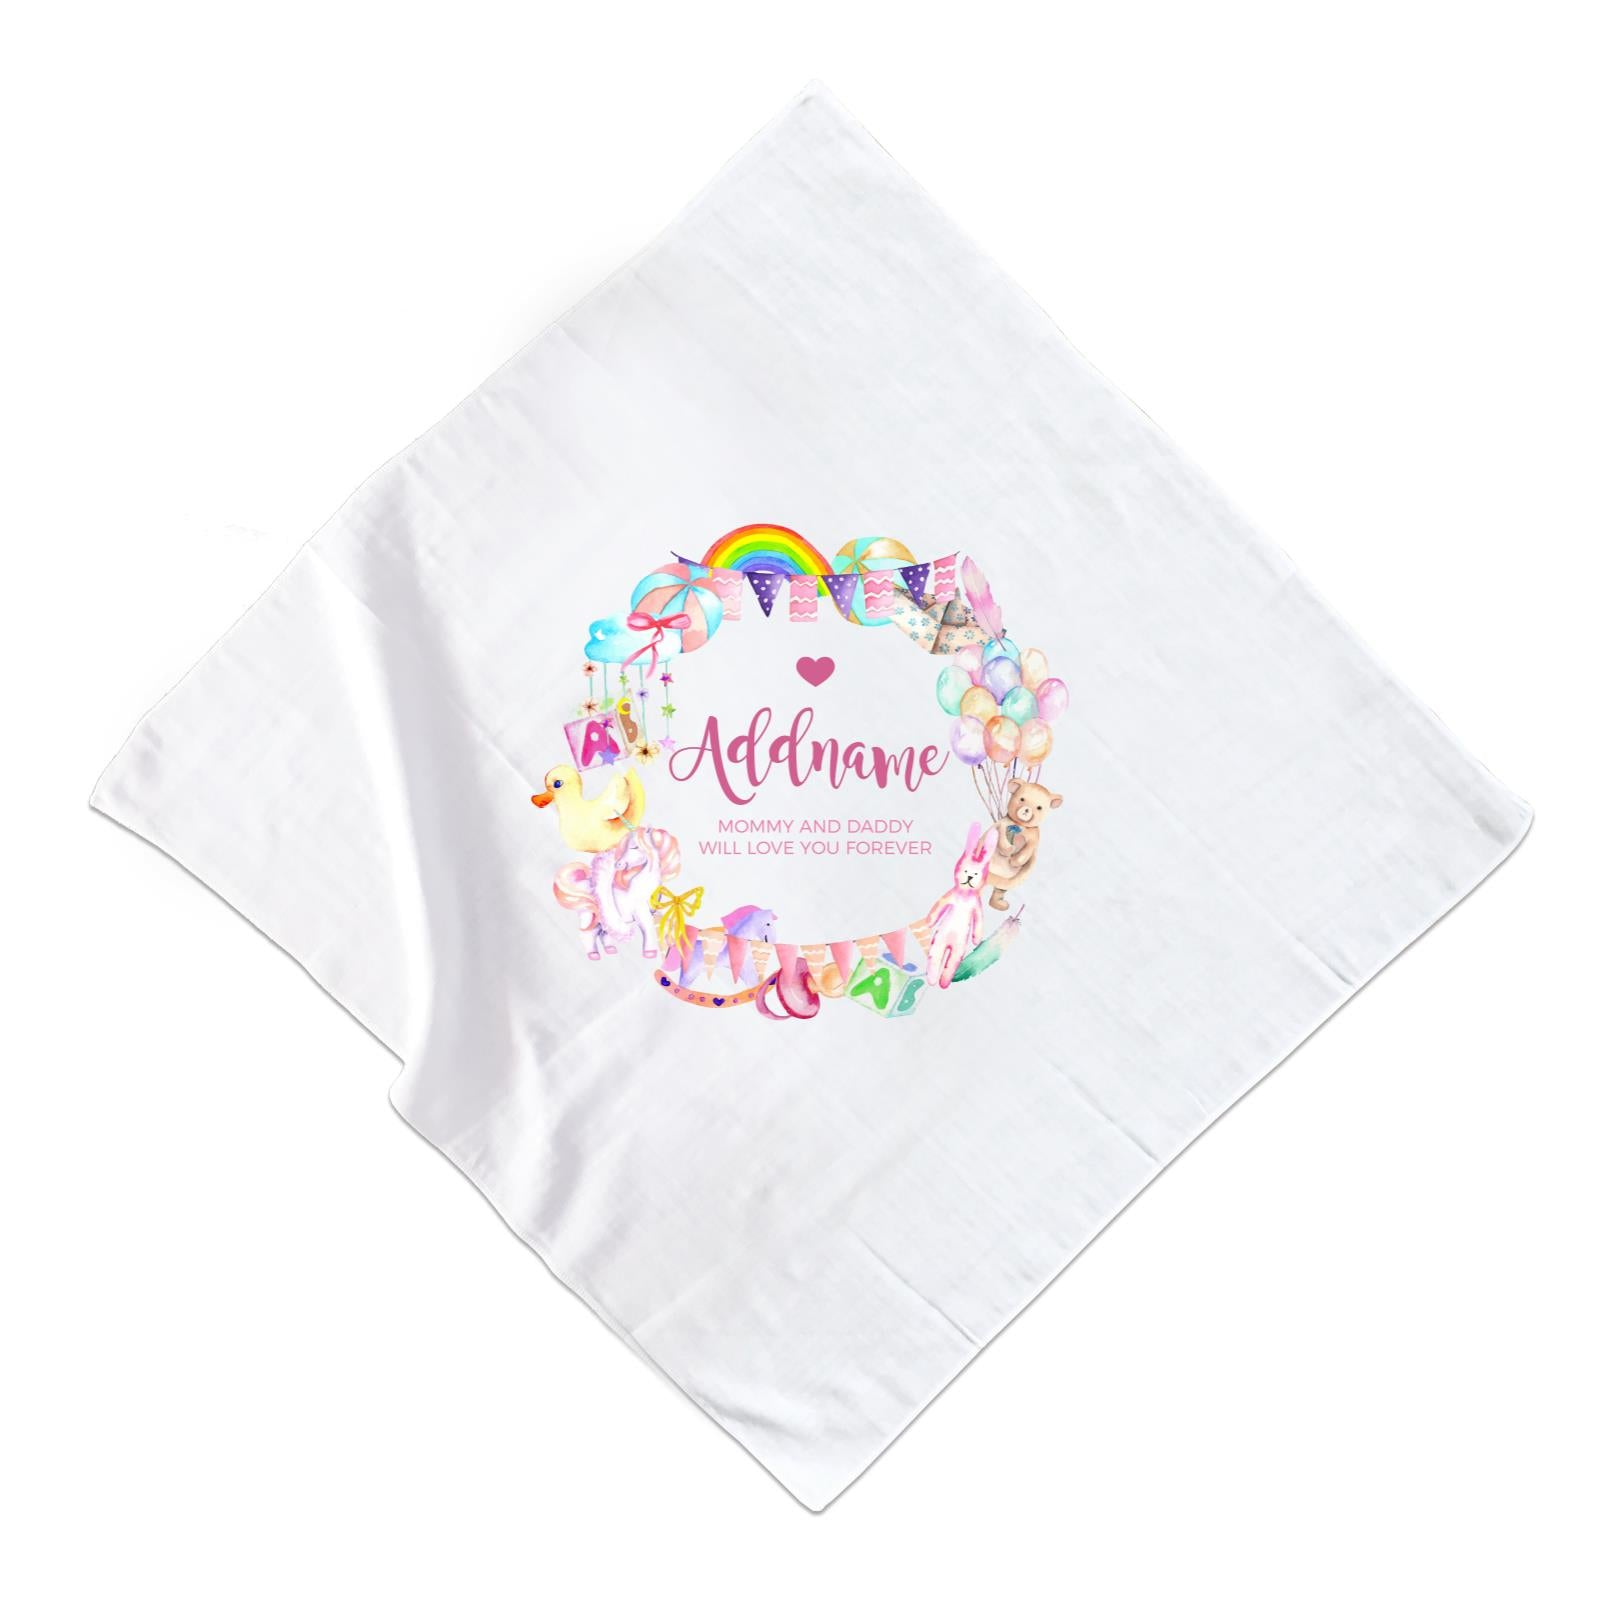 Watercolour Magical Girlish Creatures and Elements Personalizable with Name and Text Muslin Square